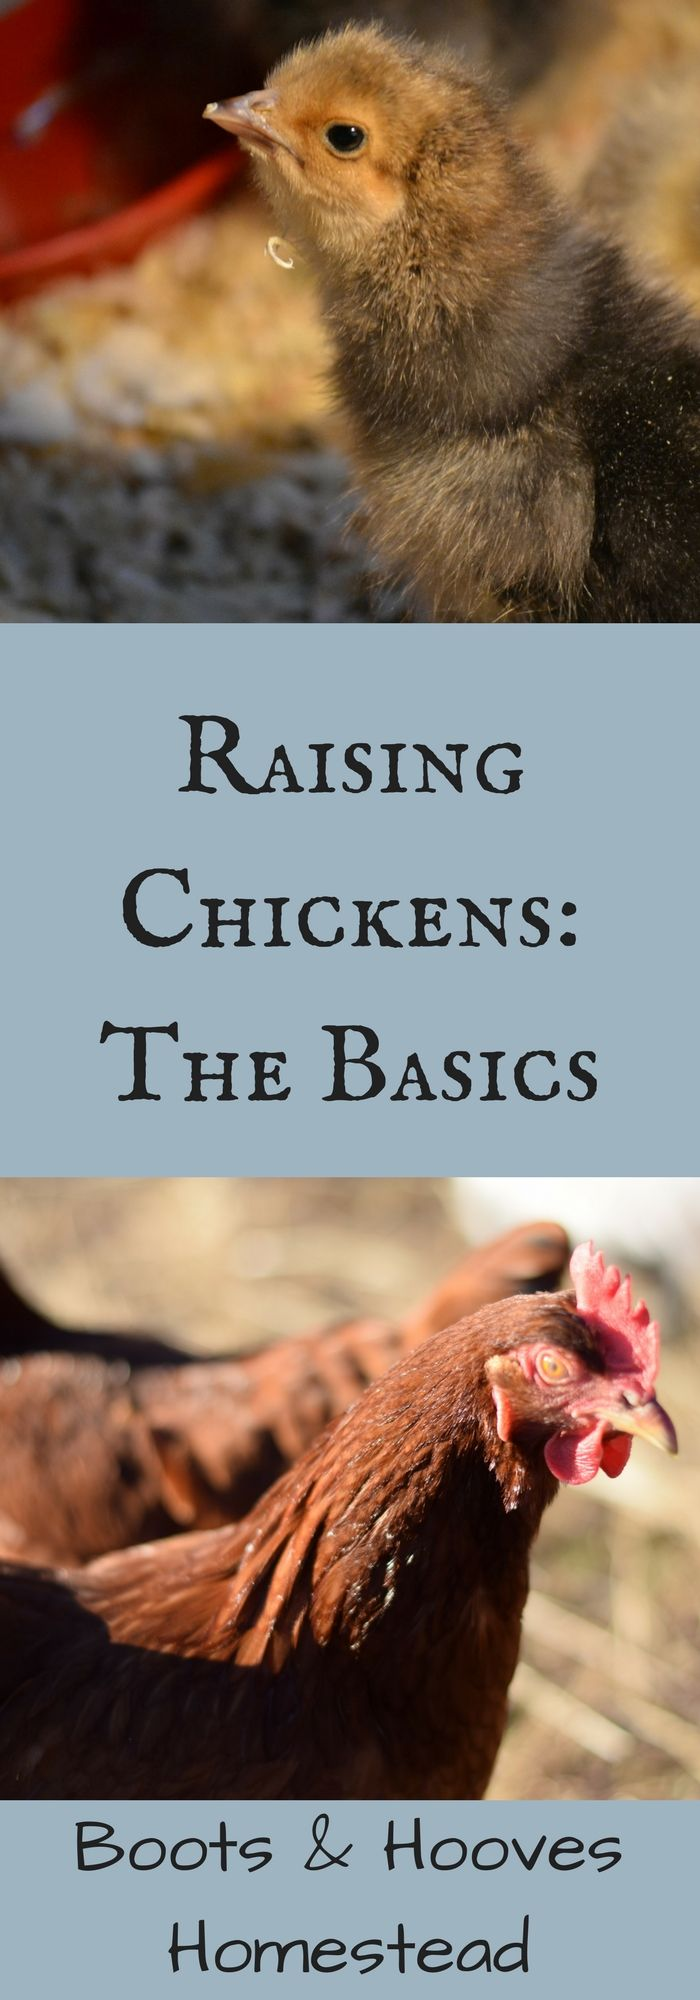 Raising Chickens: The Basics - Boots & Hooves Homestead